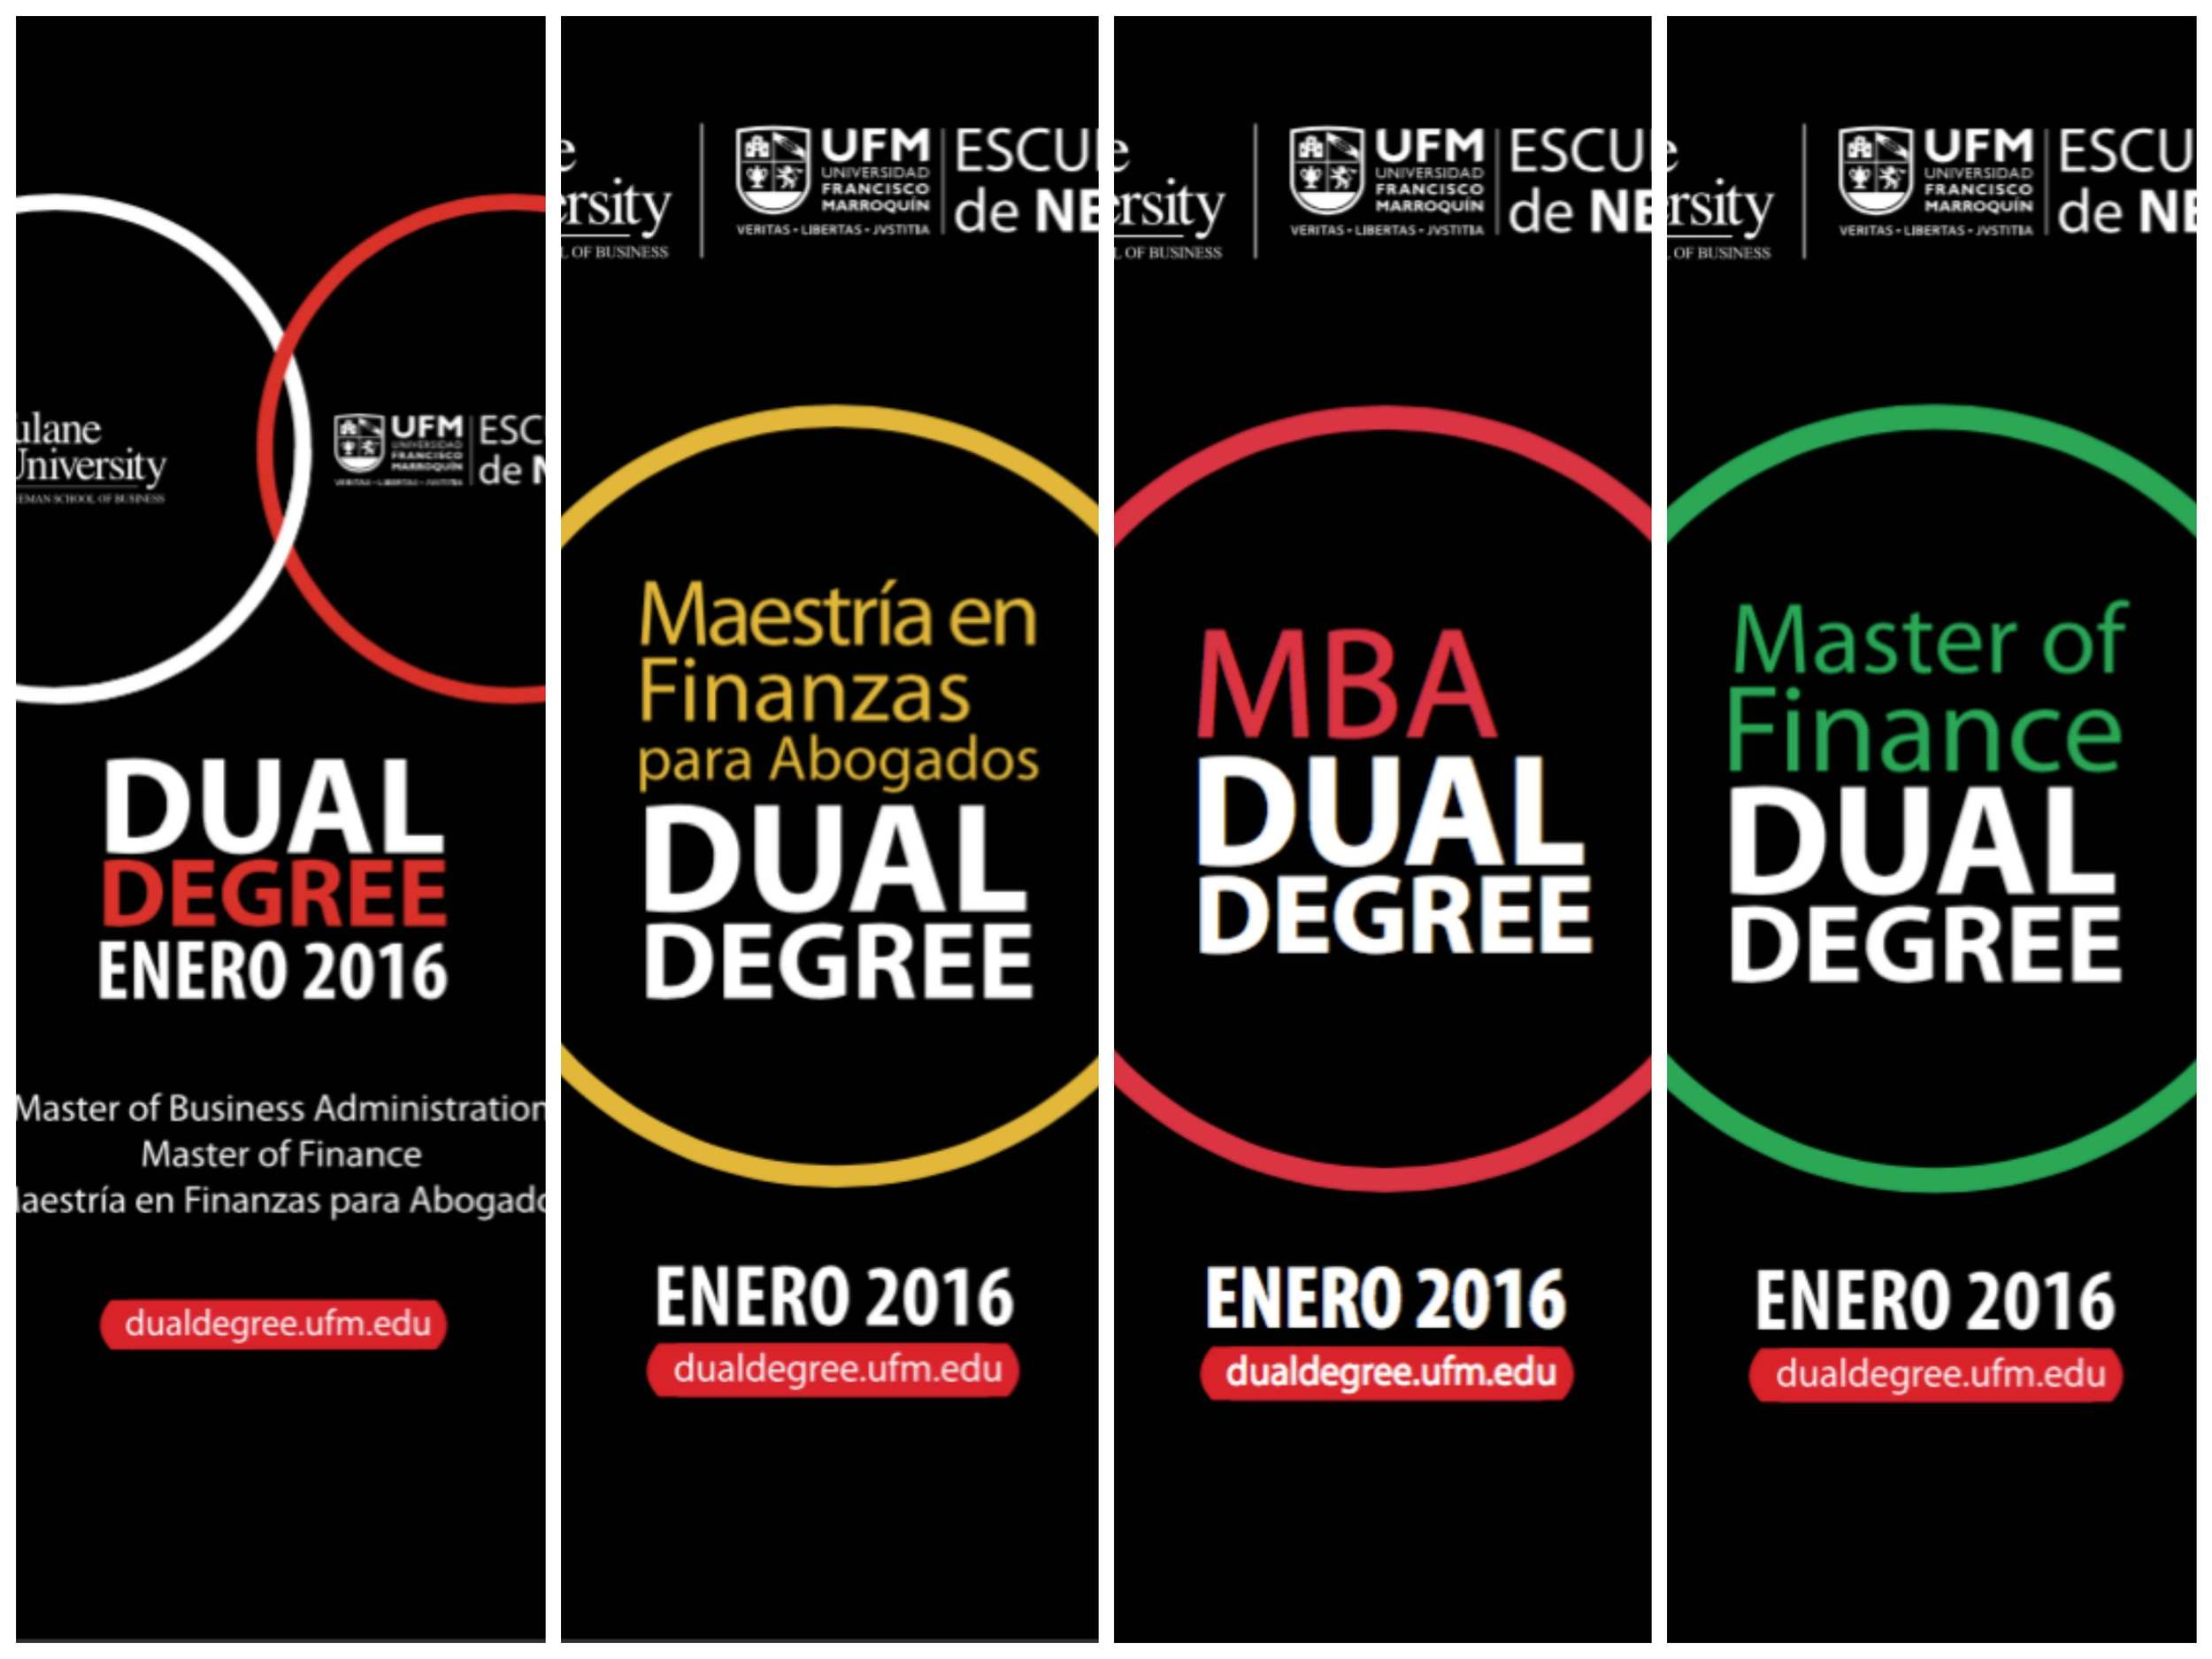 Printed Campaign for the release of Dual Degree Master's Programs in Panamá 2015 (Urban Signing / Mupis)